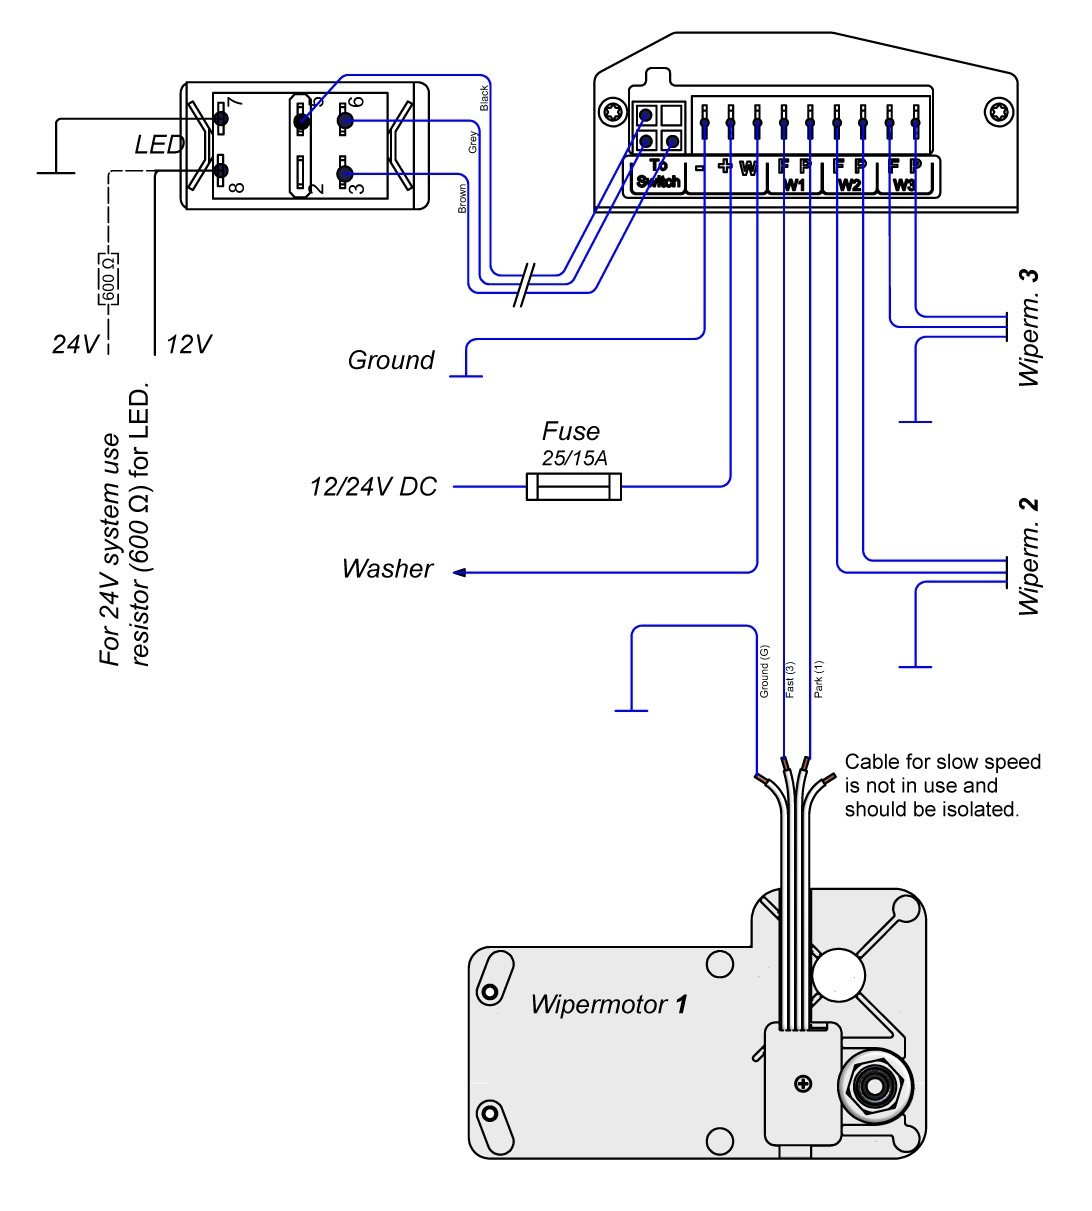 hight resolution of nova wiper motor wiring diagram wiring diagrams value 68 nova wiper motor wiring diagram